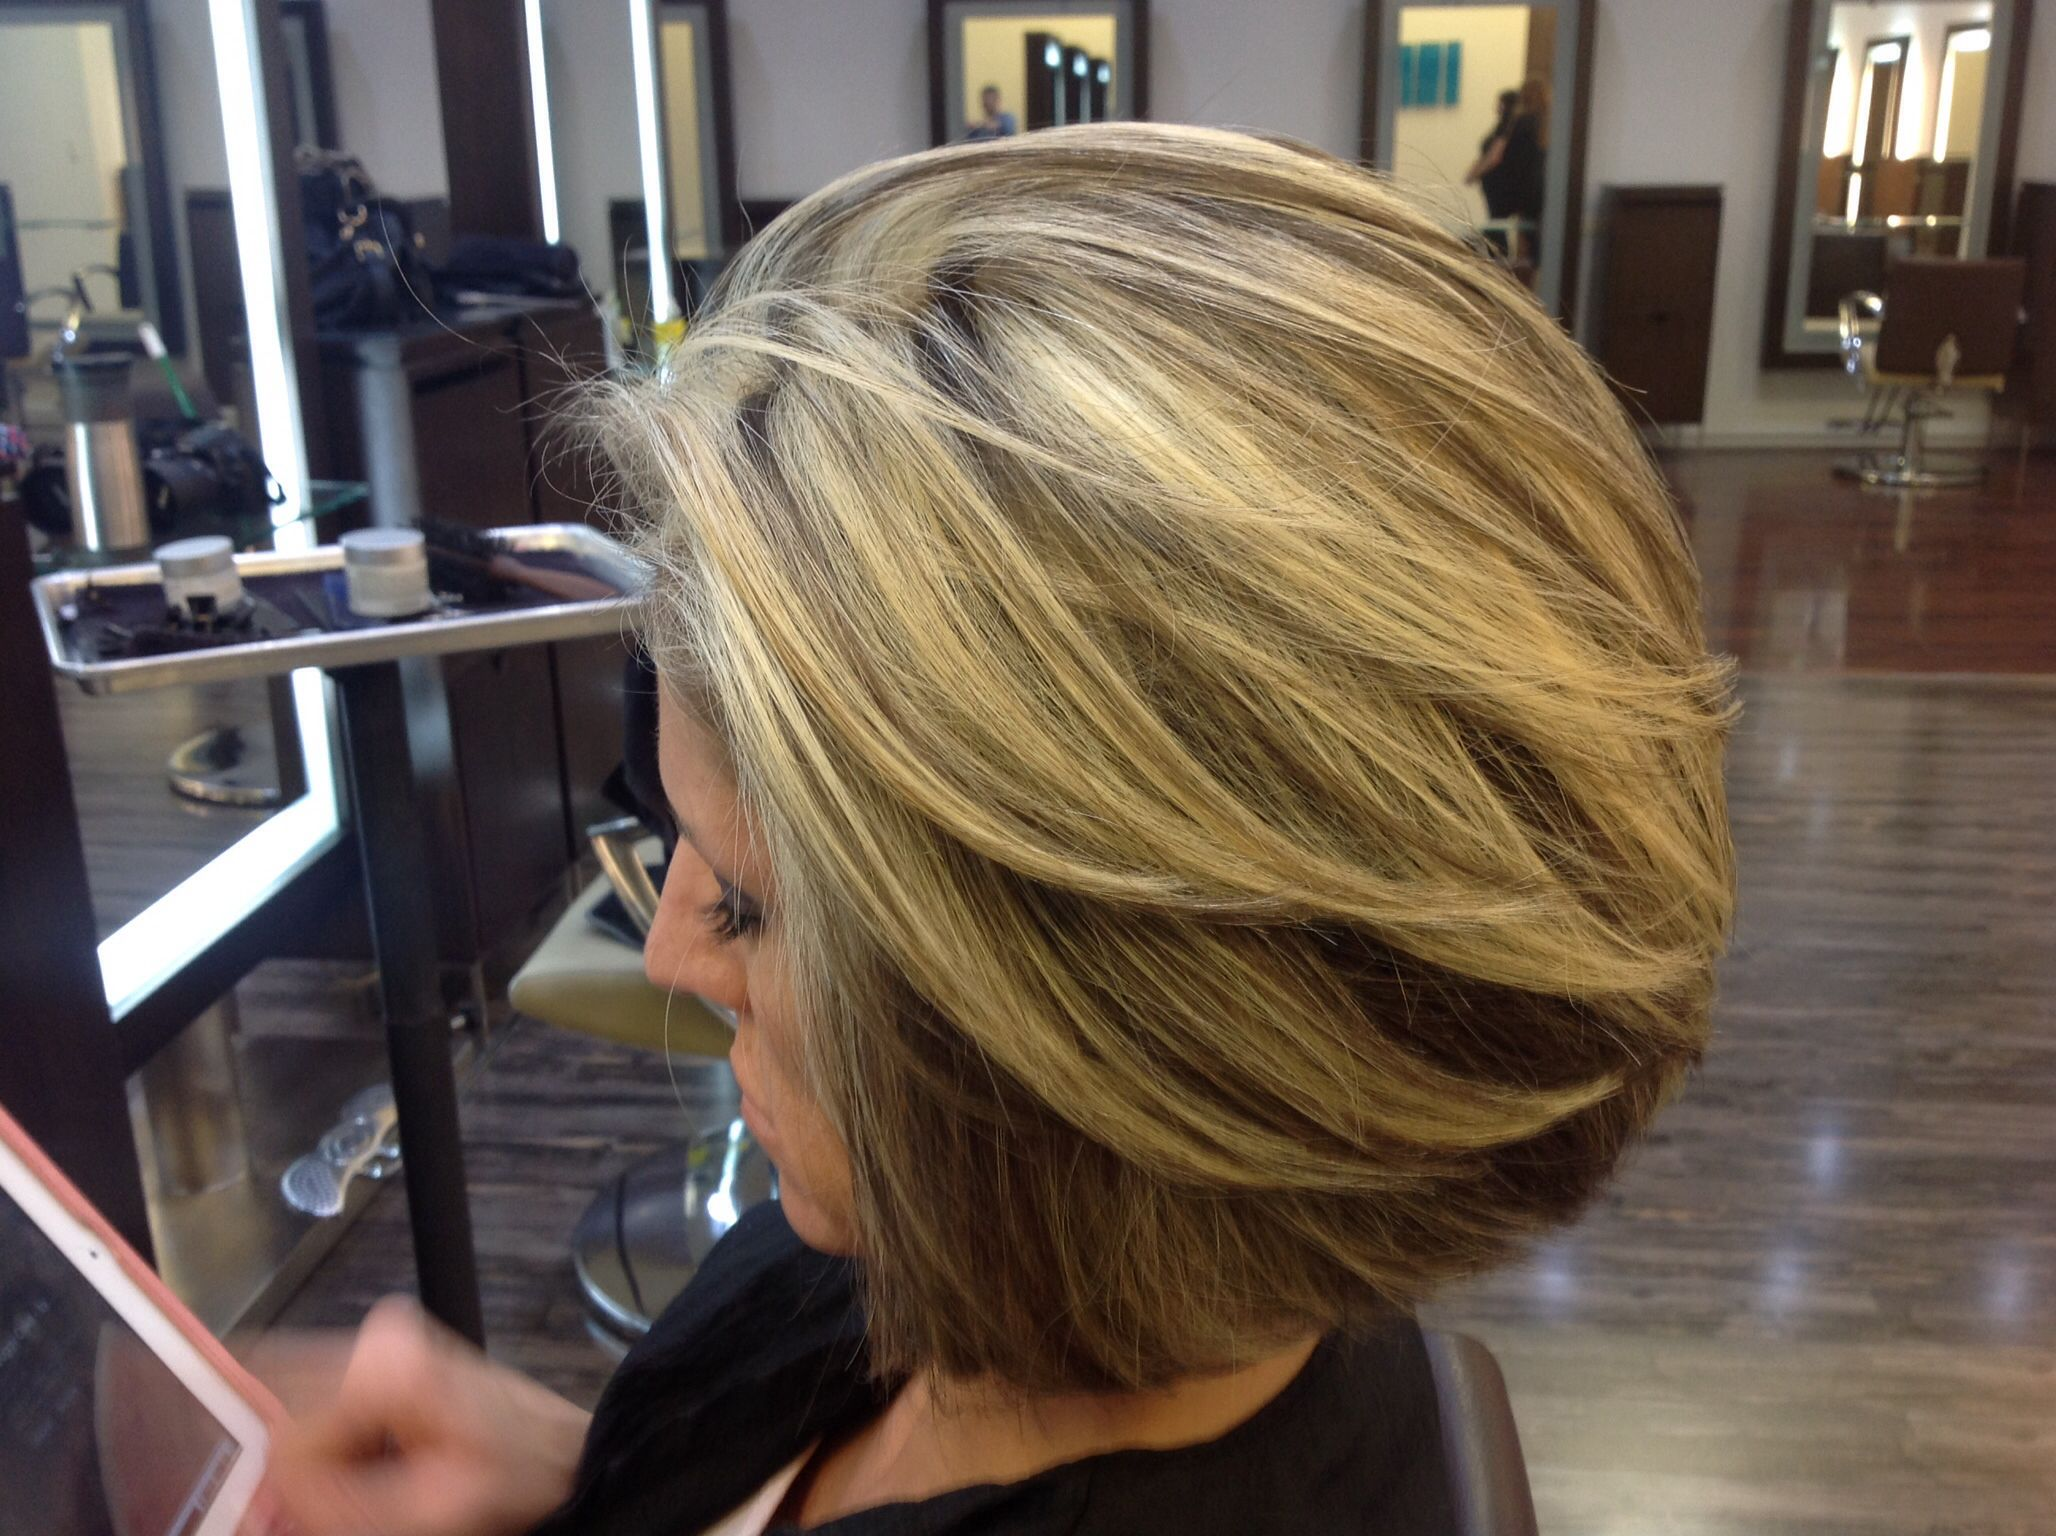 Layered bob with pattern matching blonde highlights by Andre Aronica